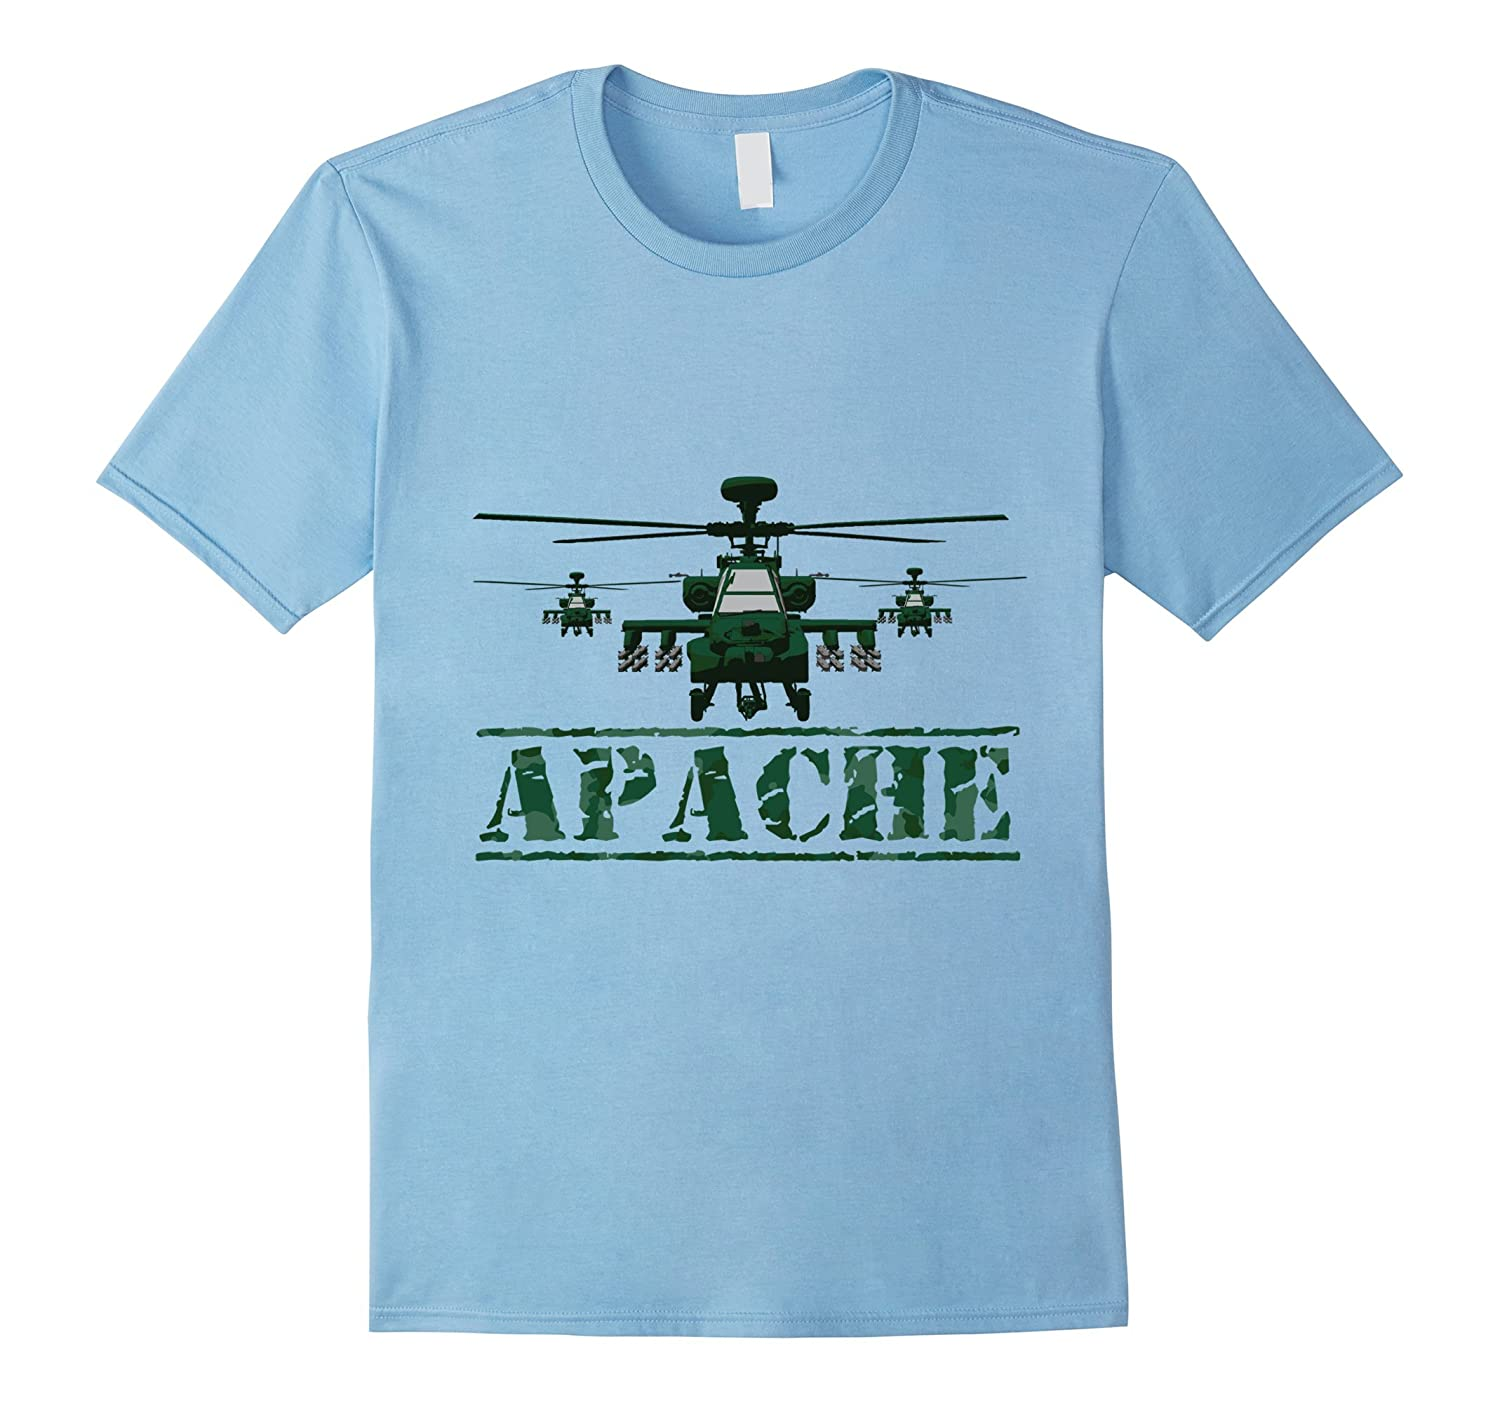 AH 64 Apache Tshirt great gift idea for military aviator